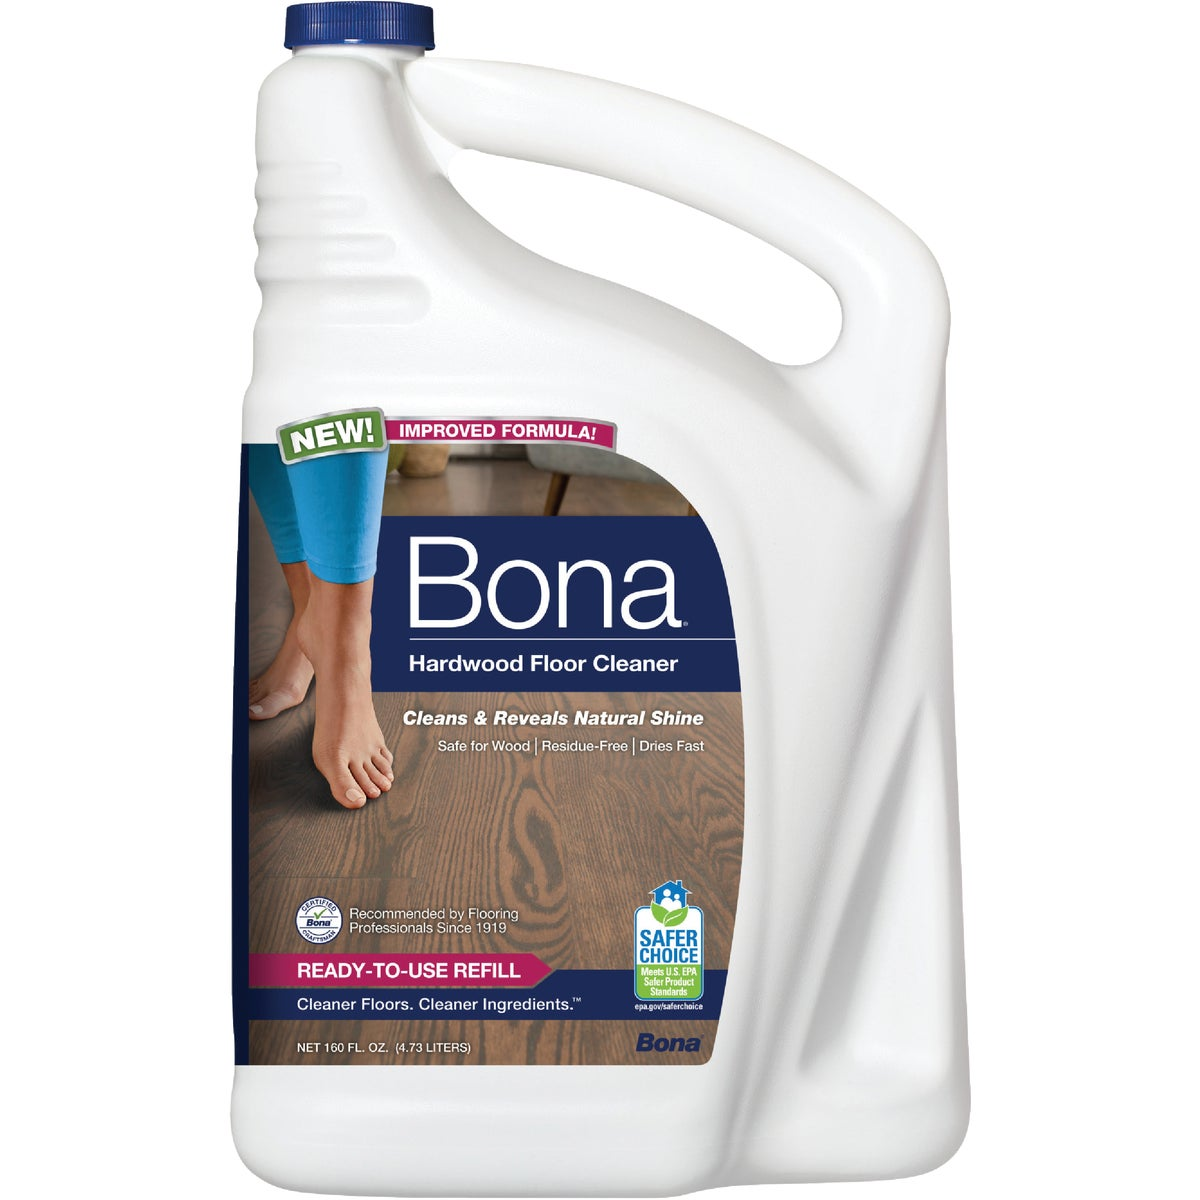 160OZ WOOD FLOOR CLEANER - WM700056001 by Bonakemi Usa Inc